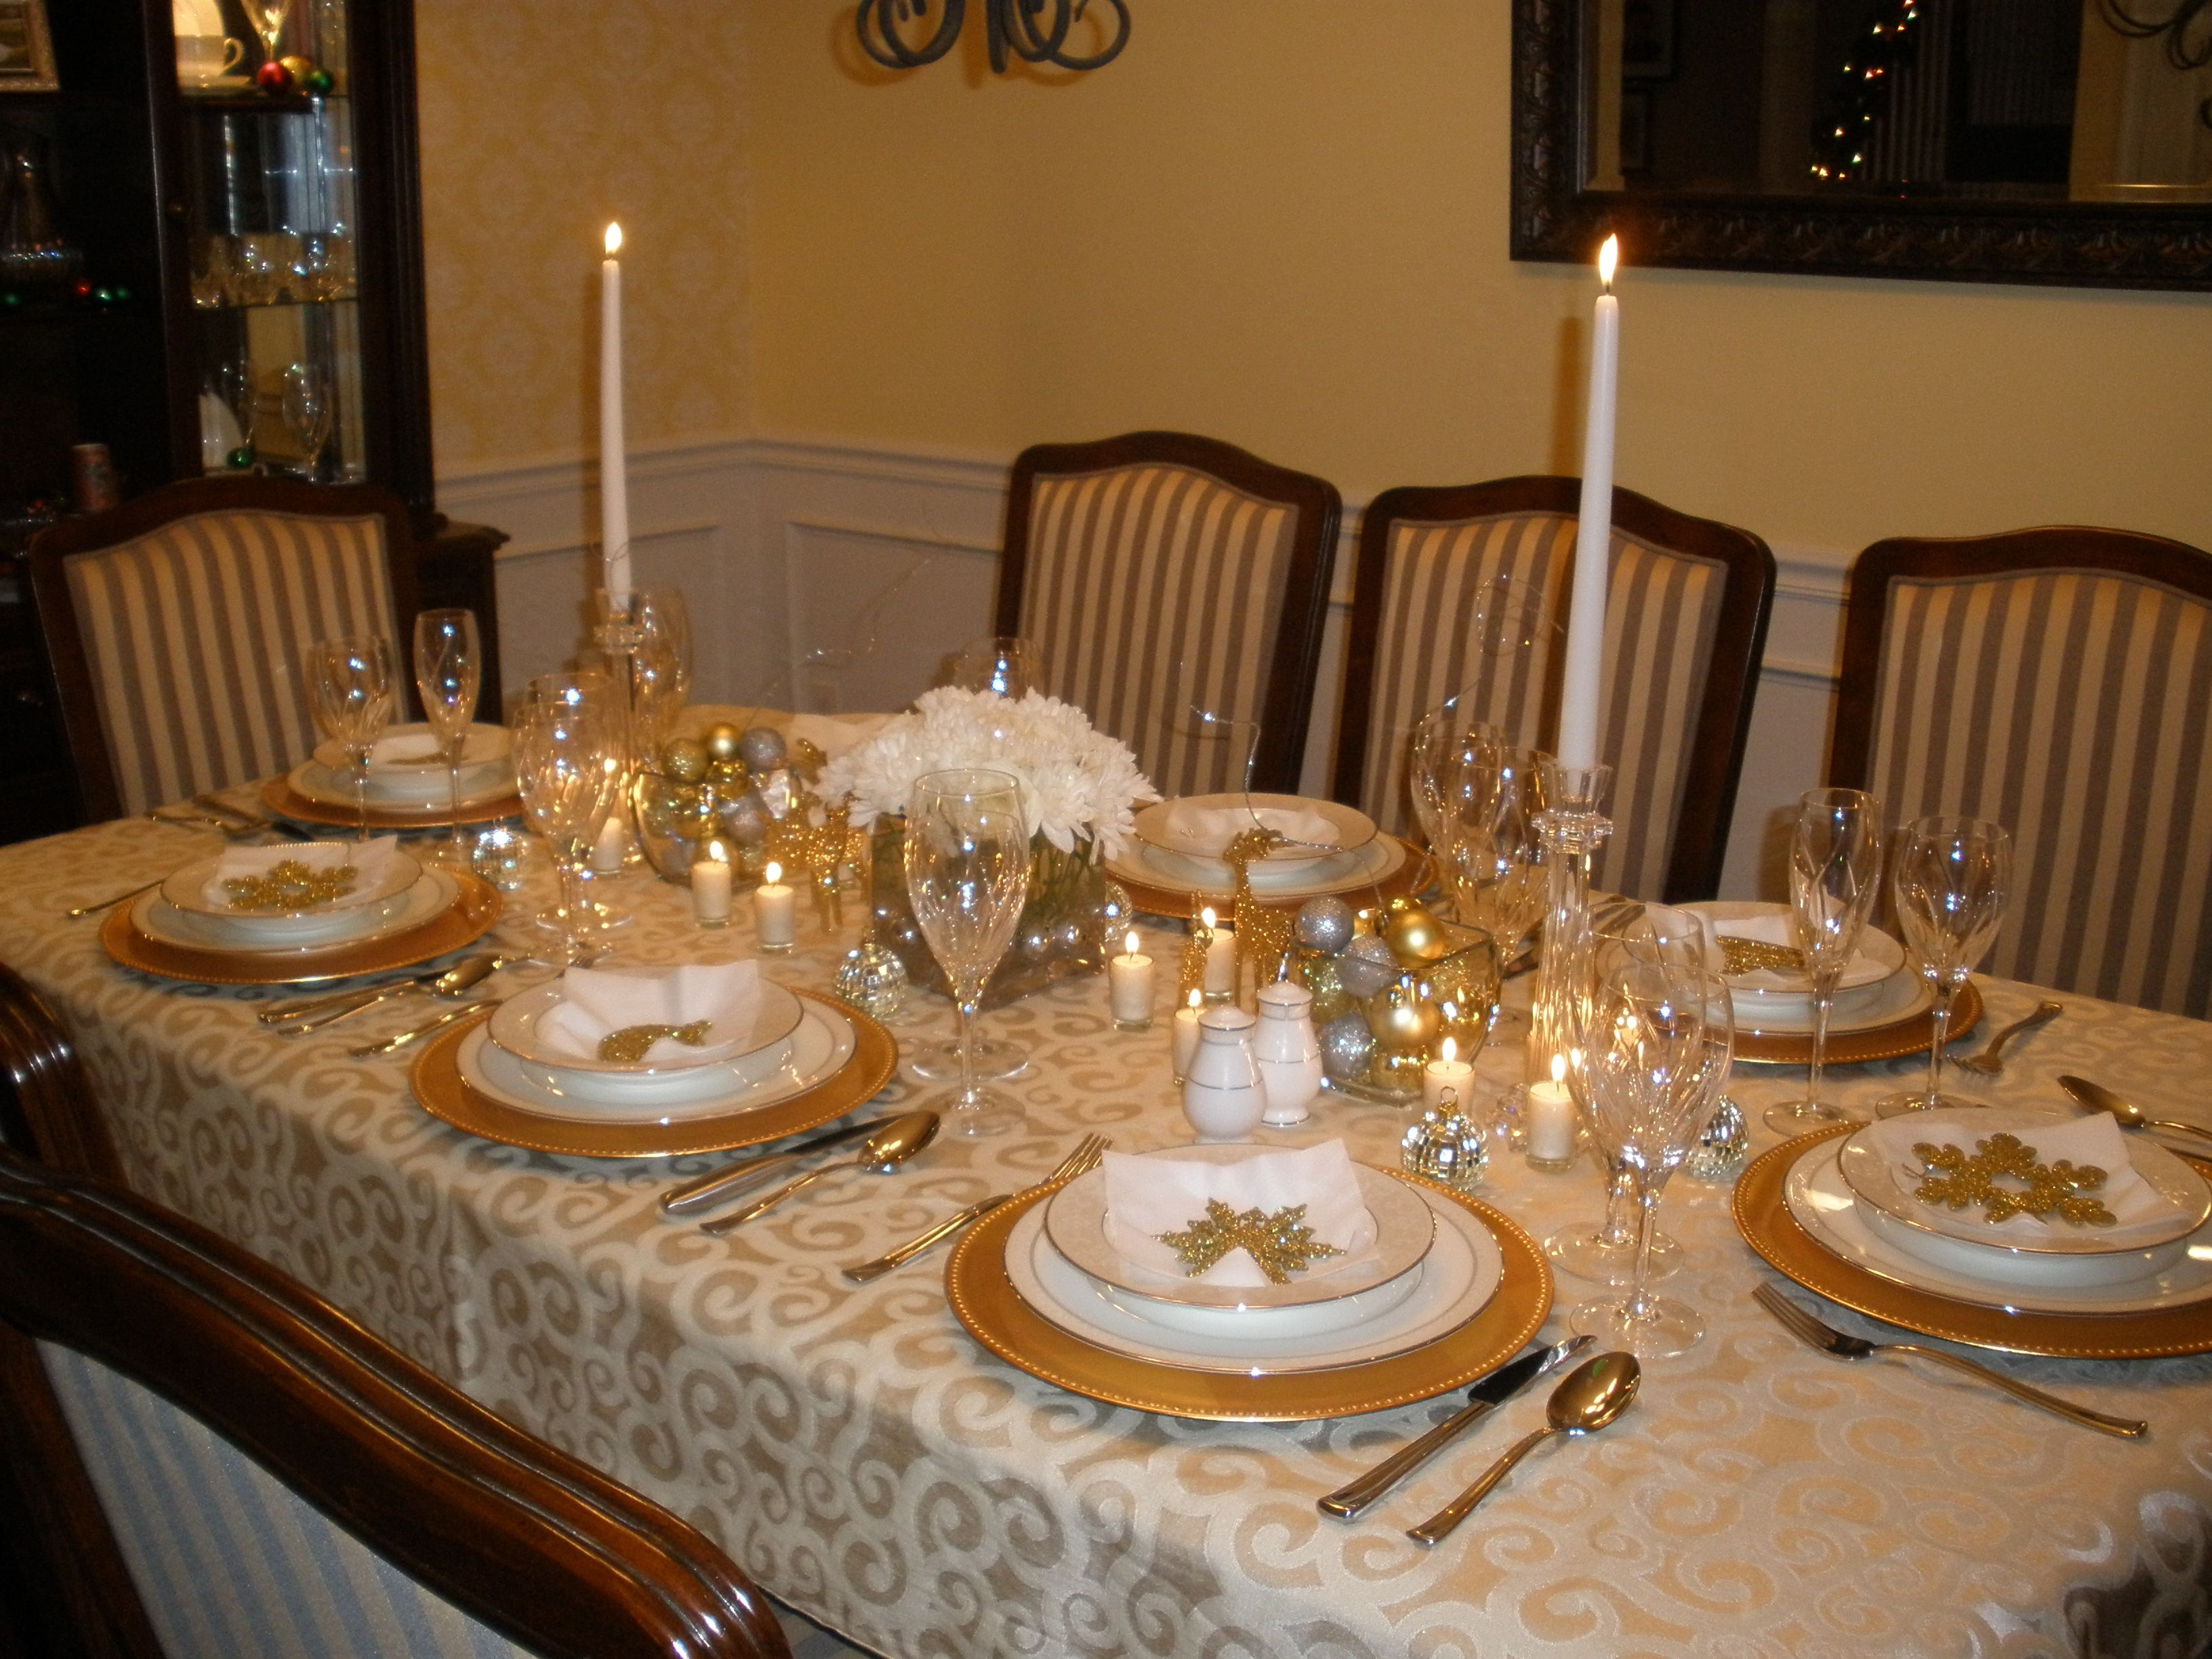 Gold christmas table setting - Gold And Silver Christmas Table Setting